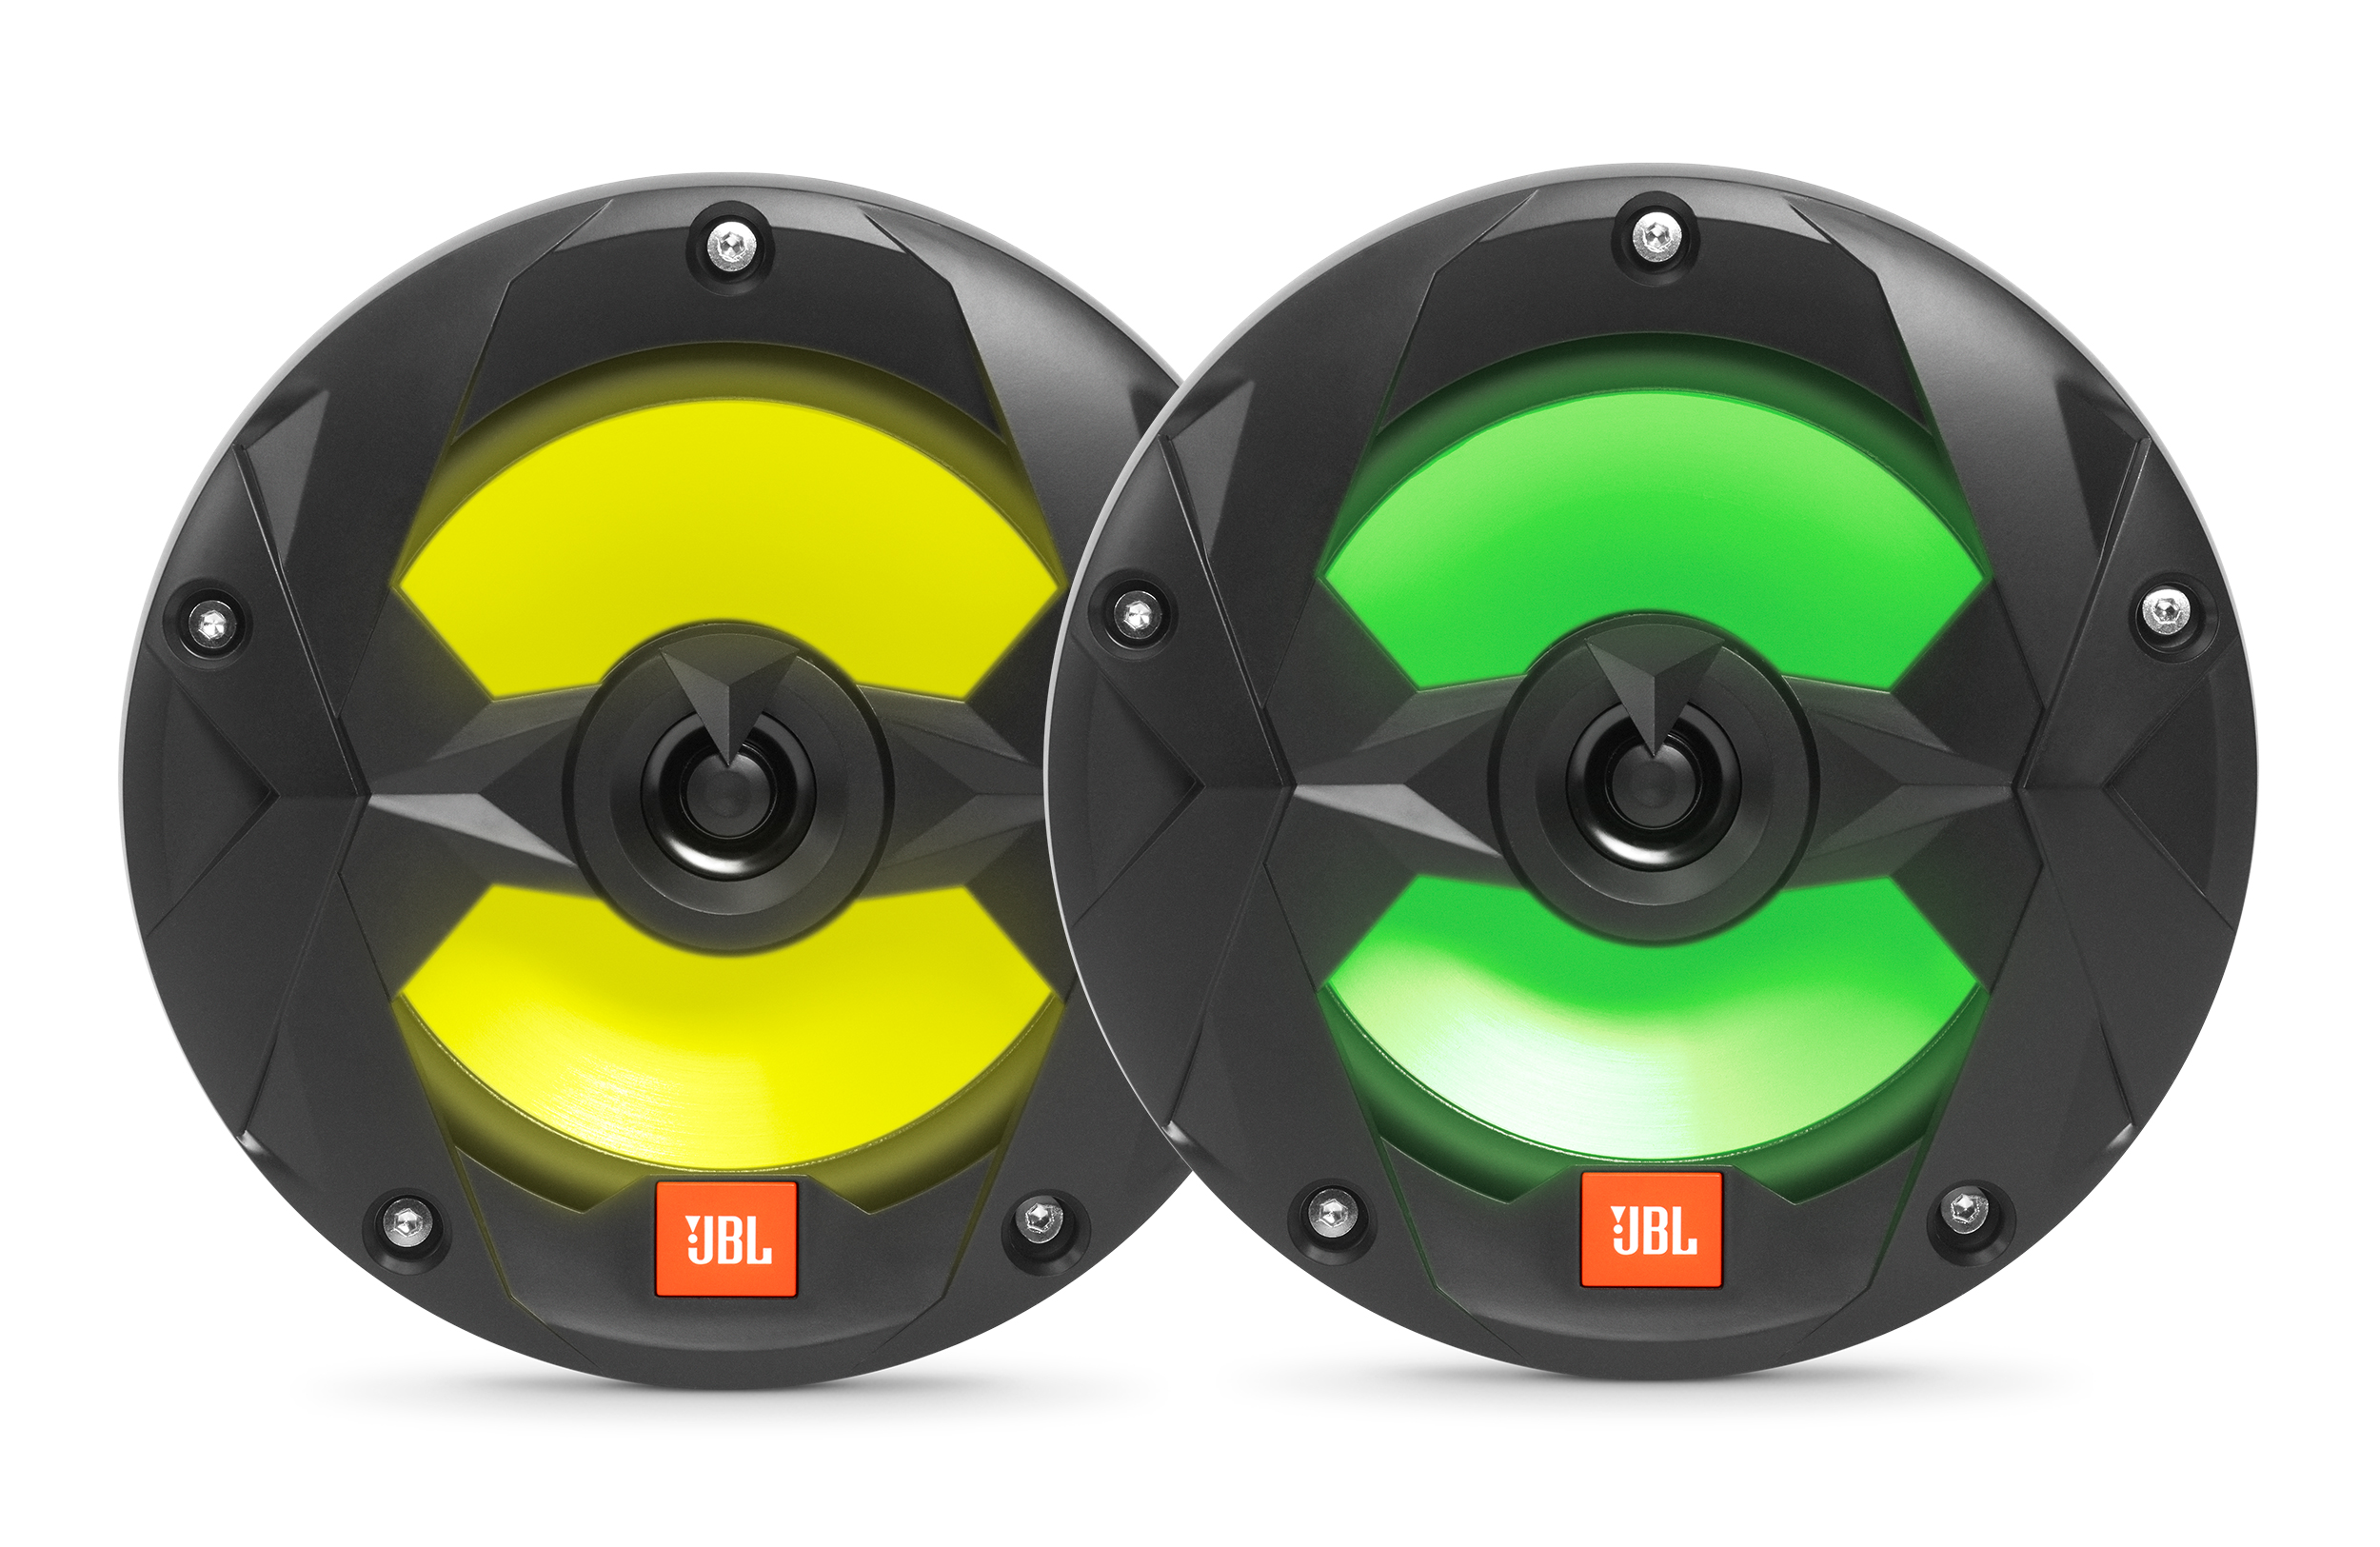 JBL Club Marine Speakers